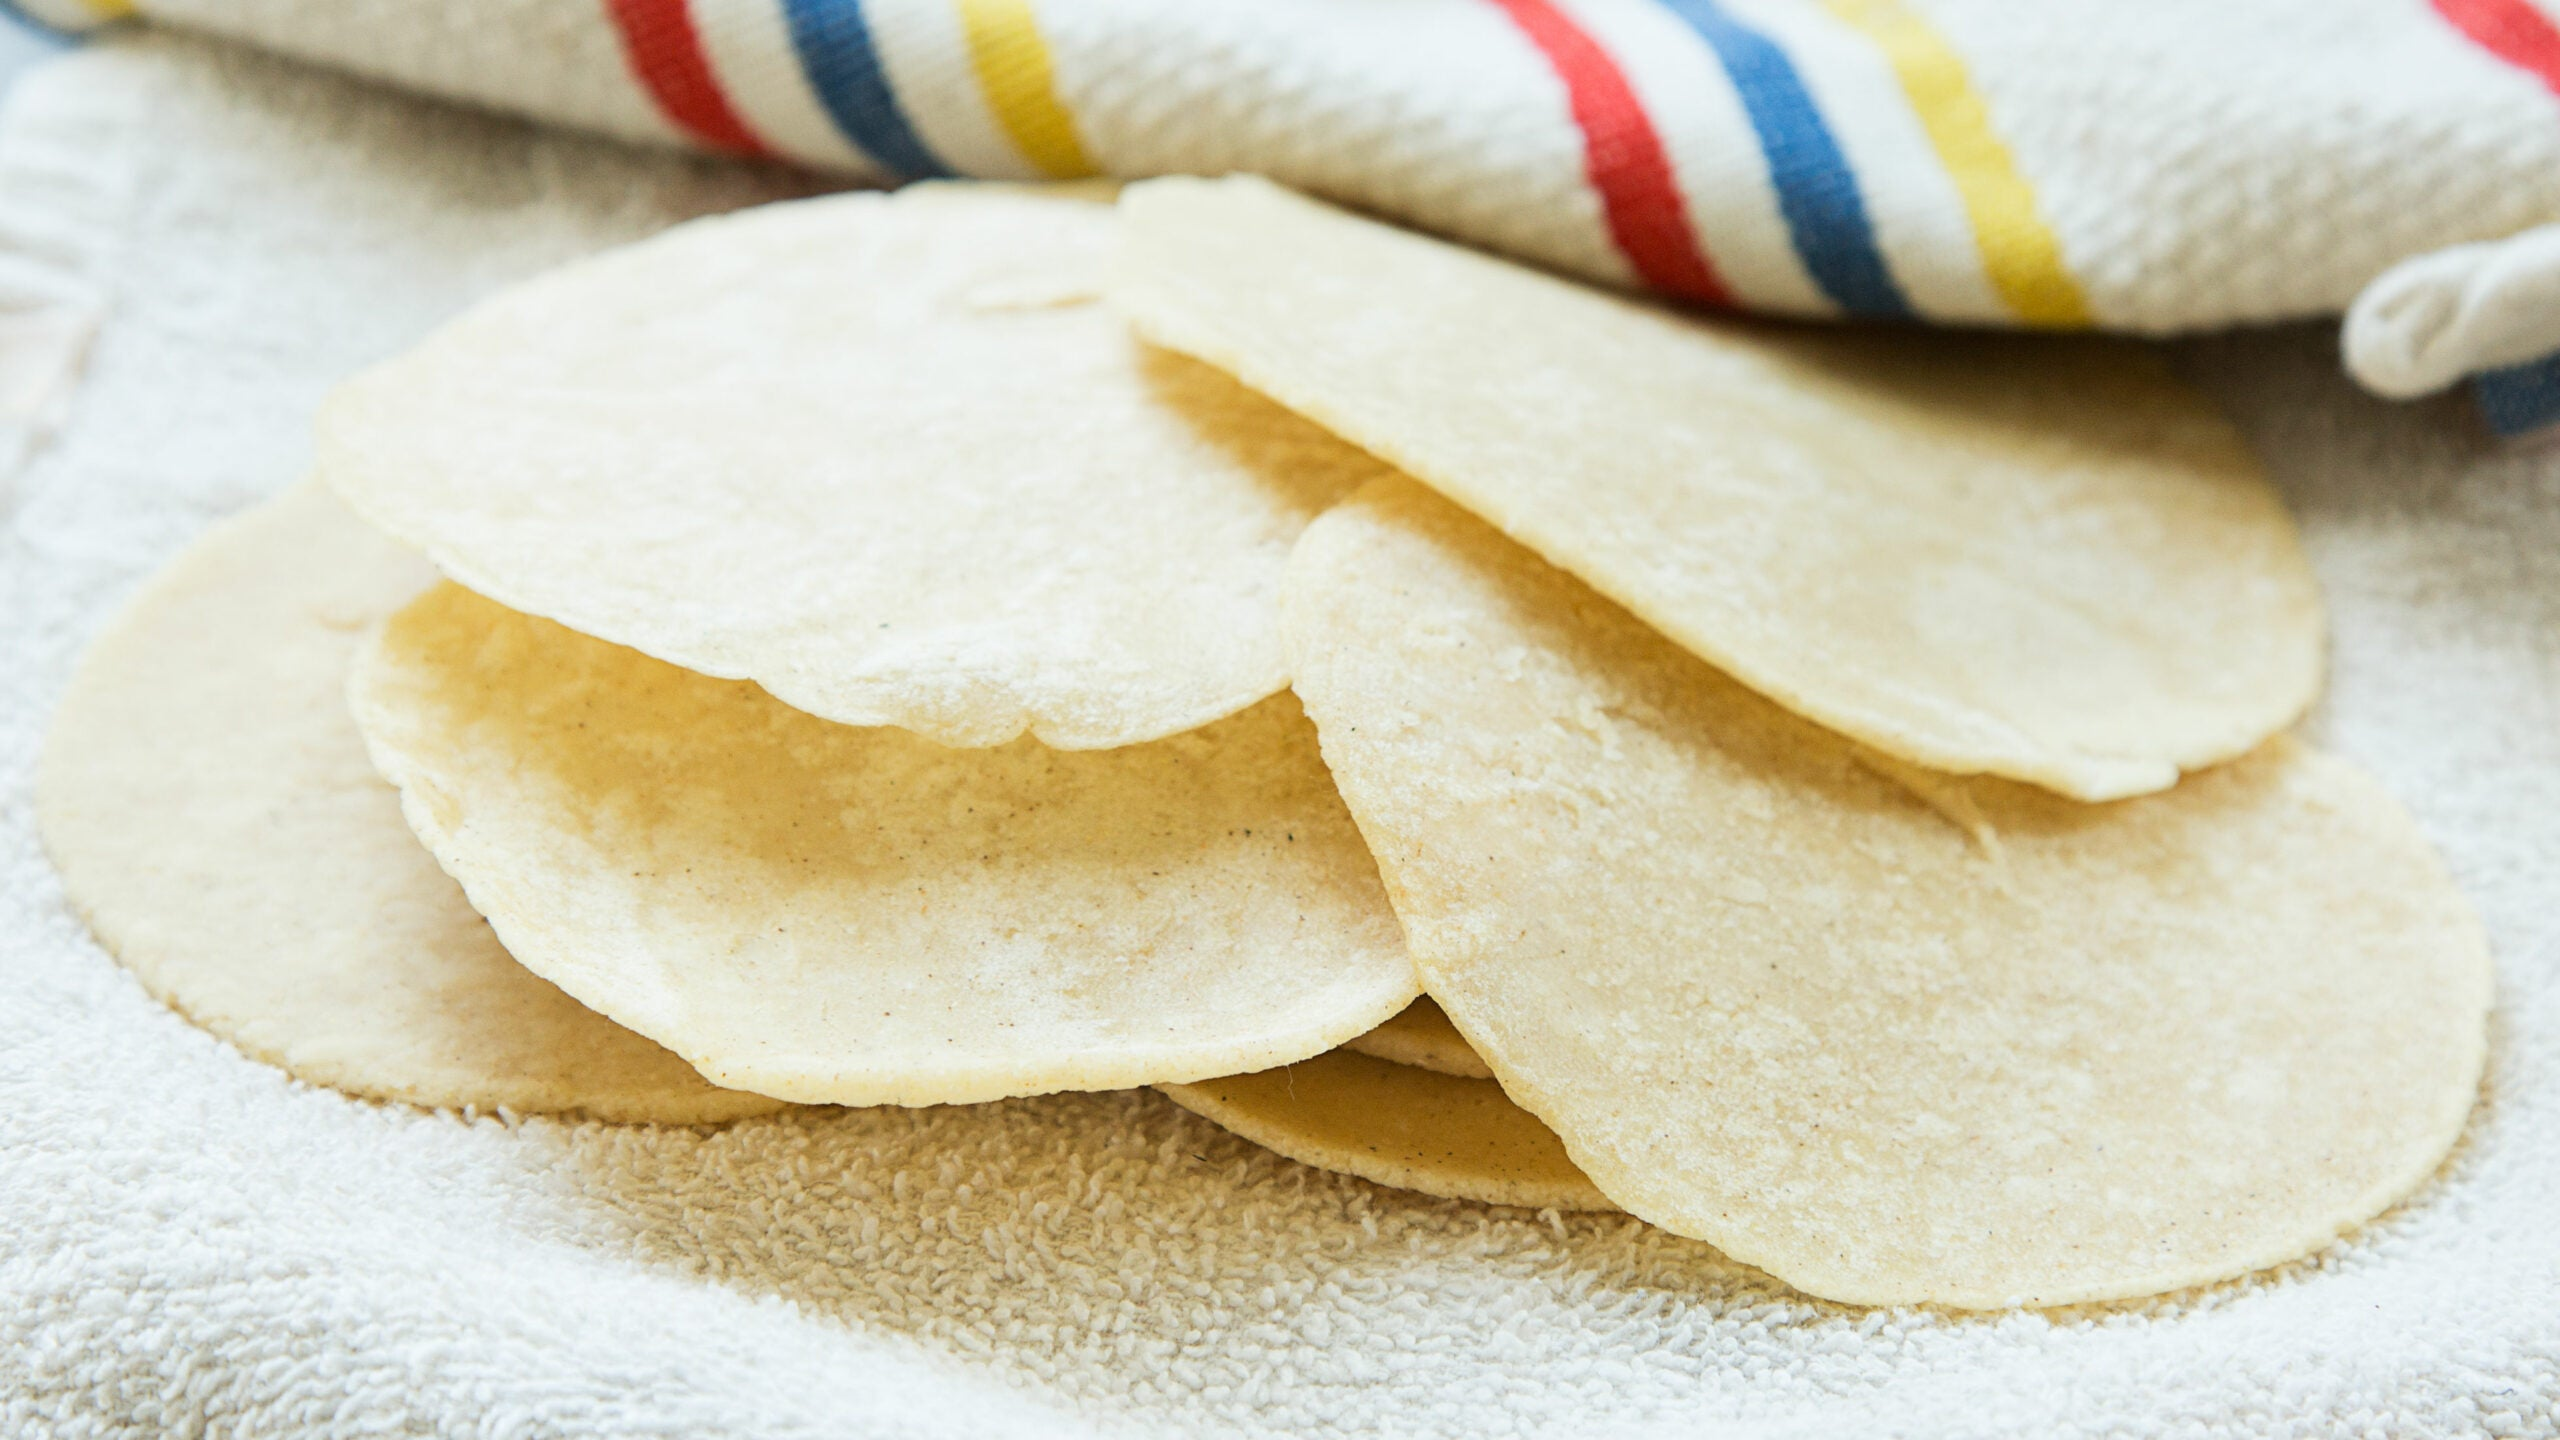 Video: How to Make Corn Tortillas from Scratch